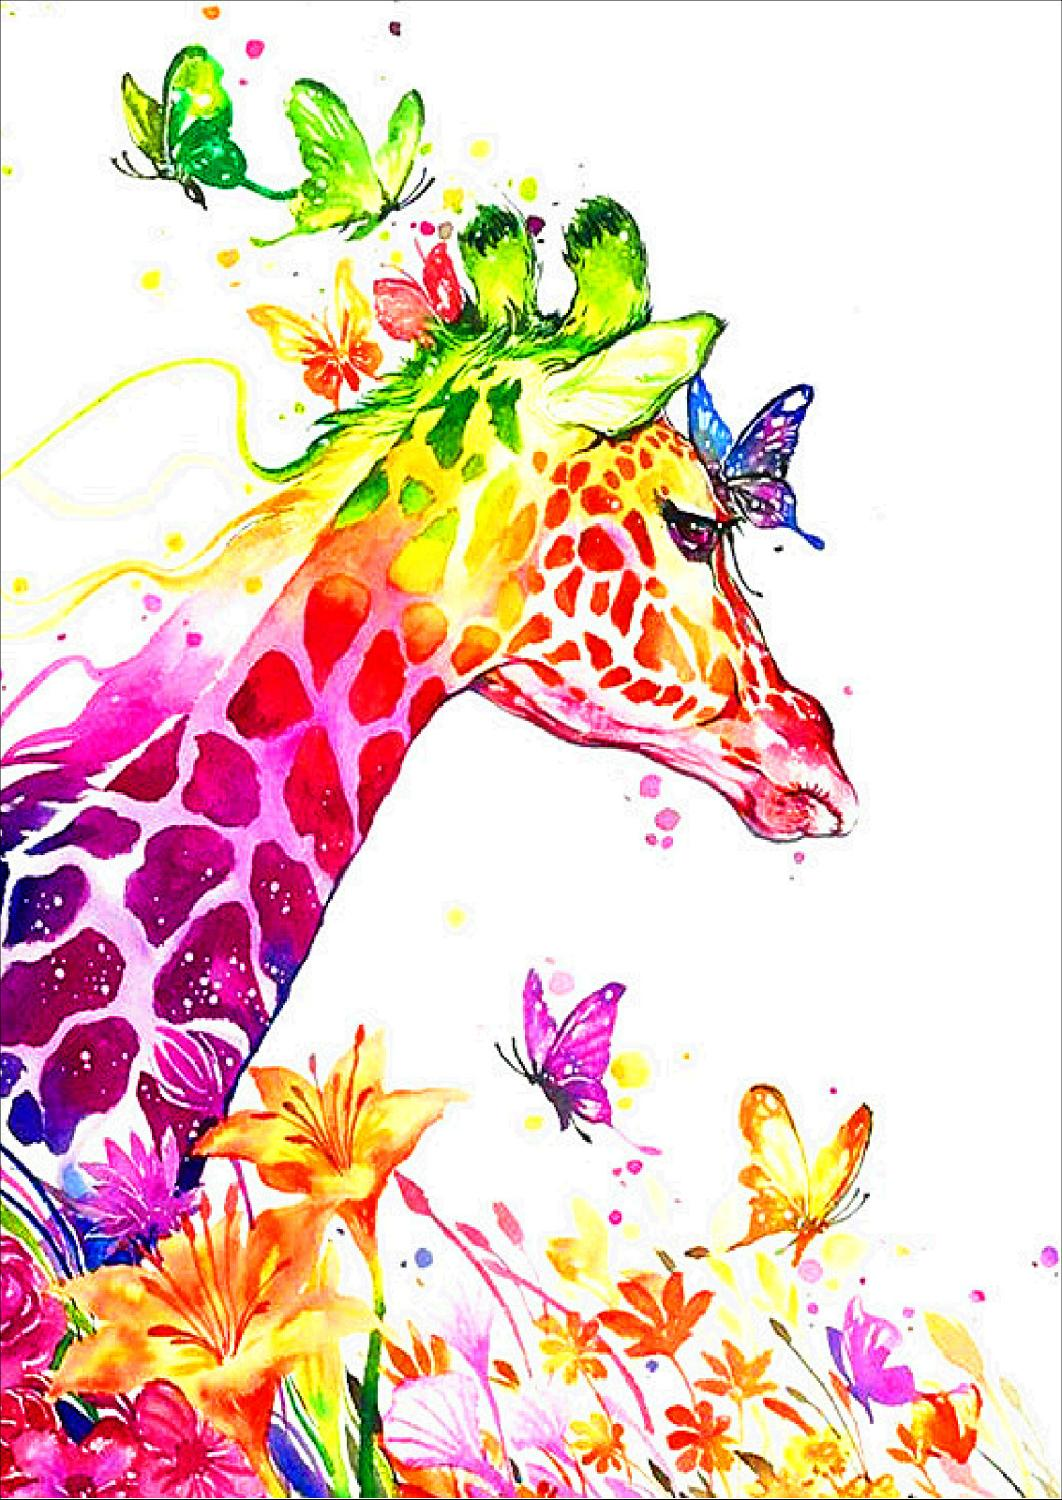 DIY 5D Diamond Painting Animals Giraffe Resin Circular Drill Embroidery Cross Stitch Mosaic Rhinestone Decoration Painting